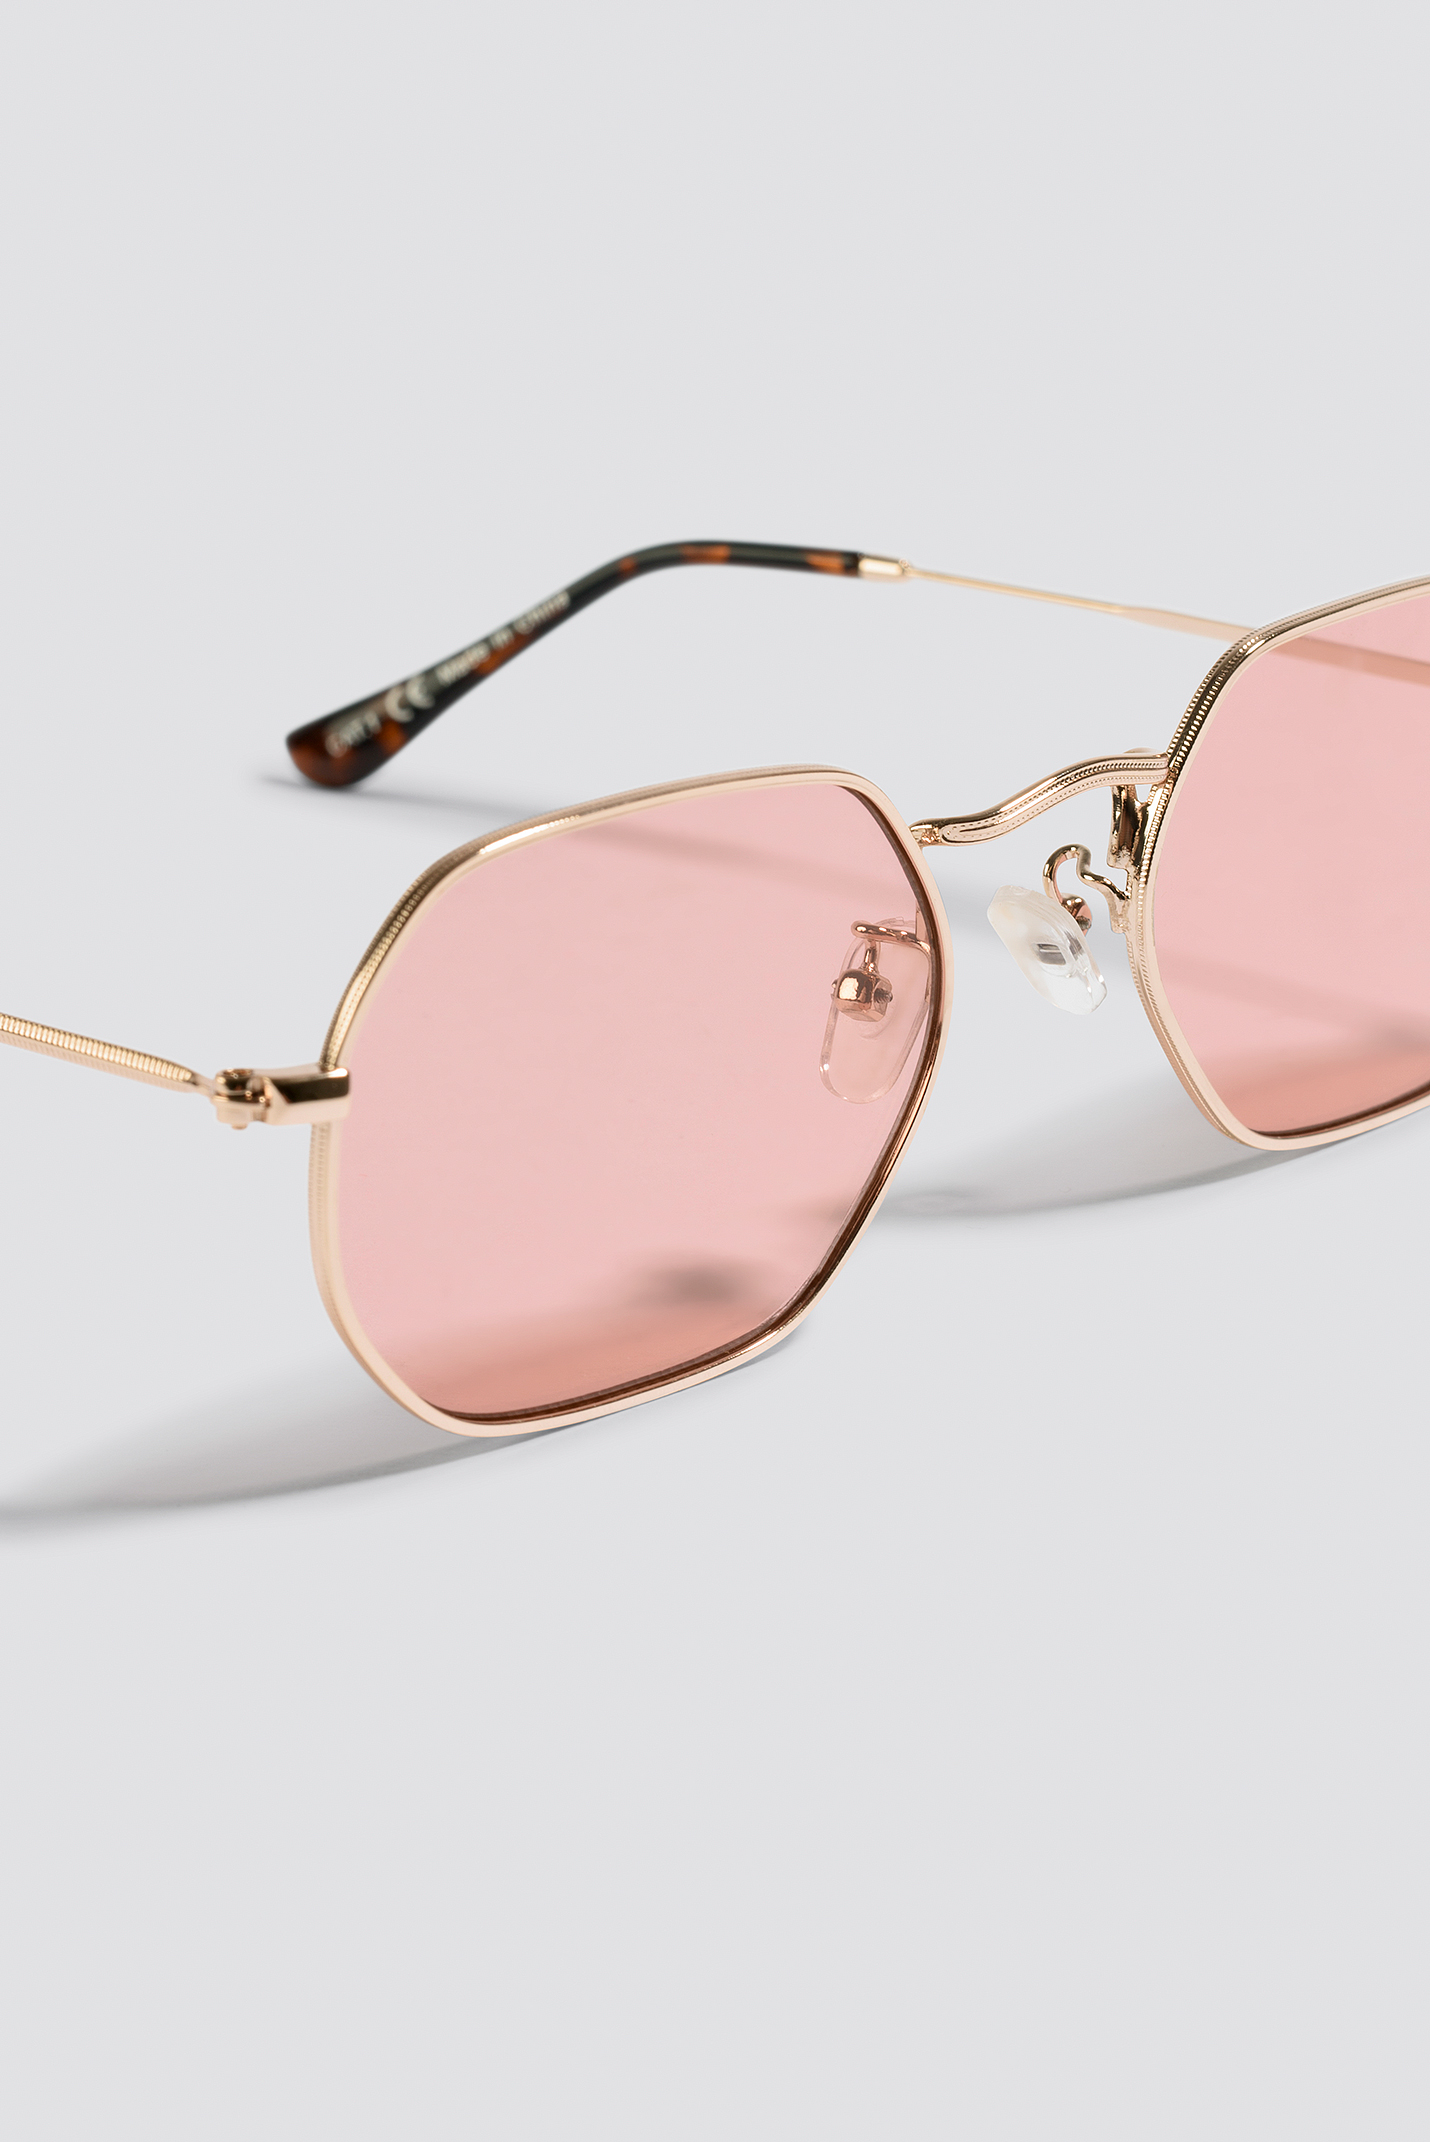 NA-KD Accessories Octagon Frame Sunglasses - Pink,Gold